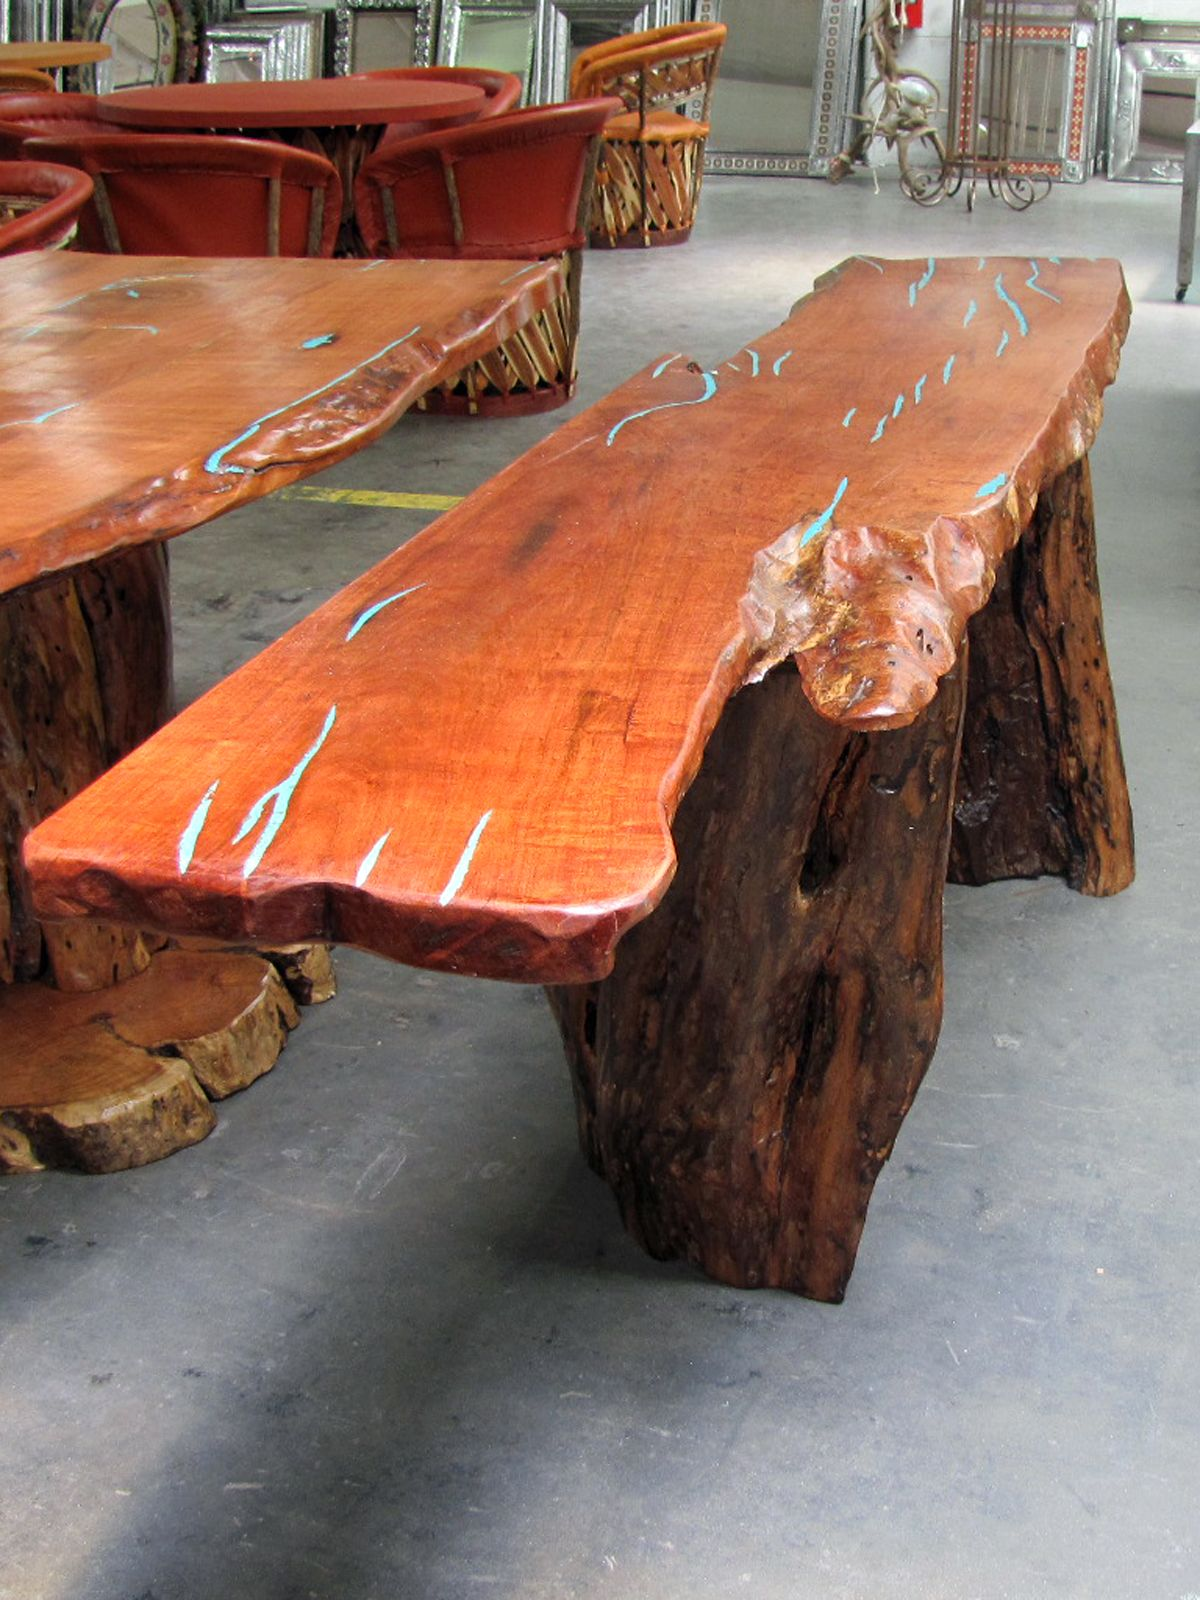 A Unique Mesquite Wood Sofa Table With Turquoise Inlay The Top Is Slab Of Natural Raw Edge And Base Consists Finished